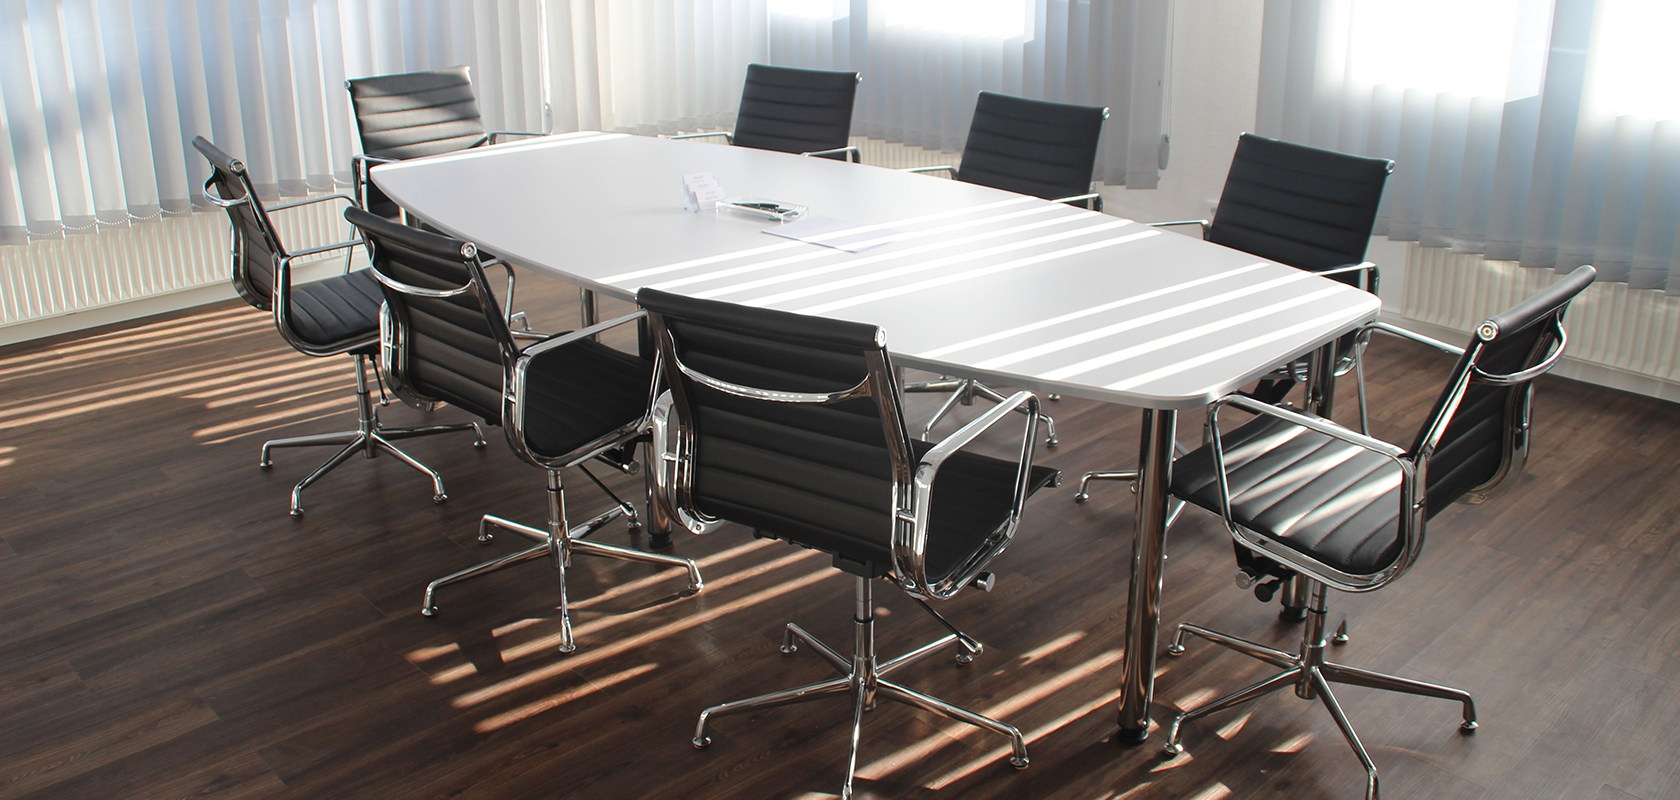 Typical conference room with 8 chairs